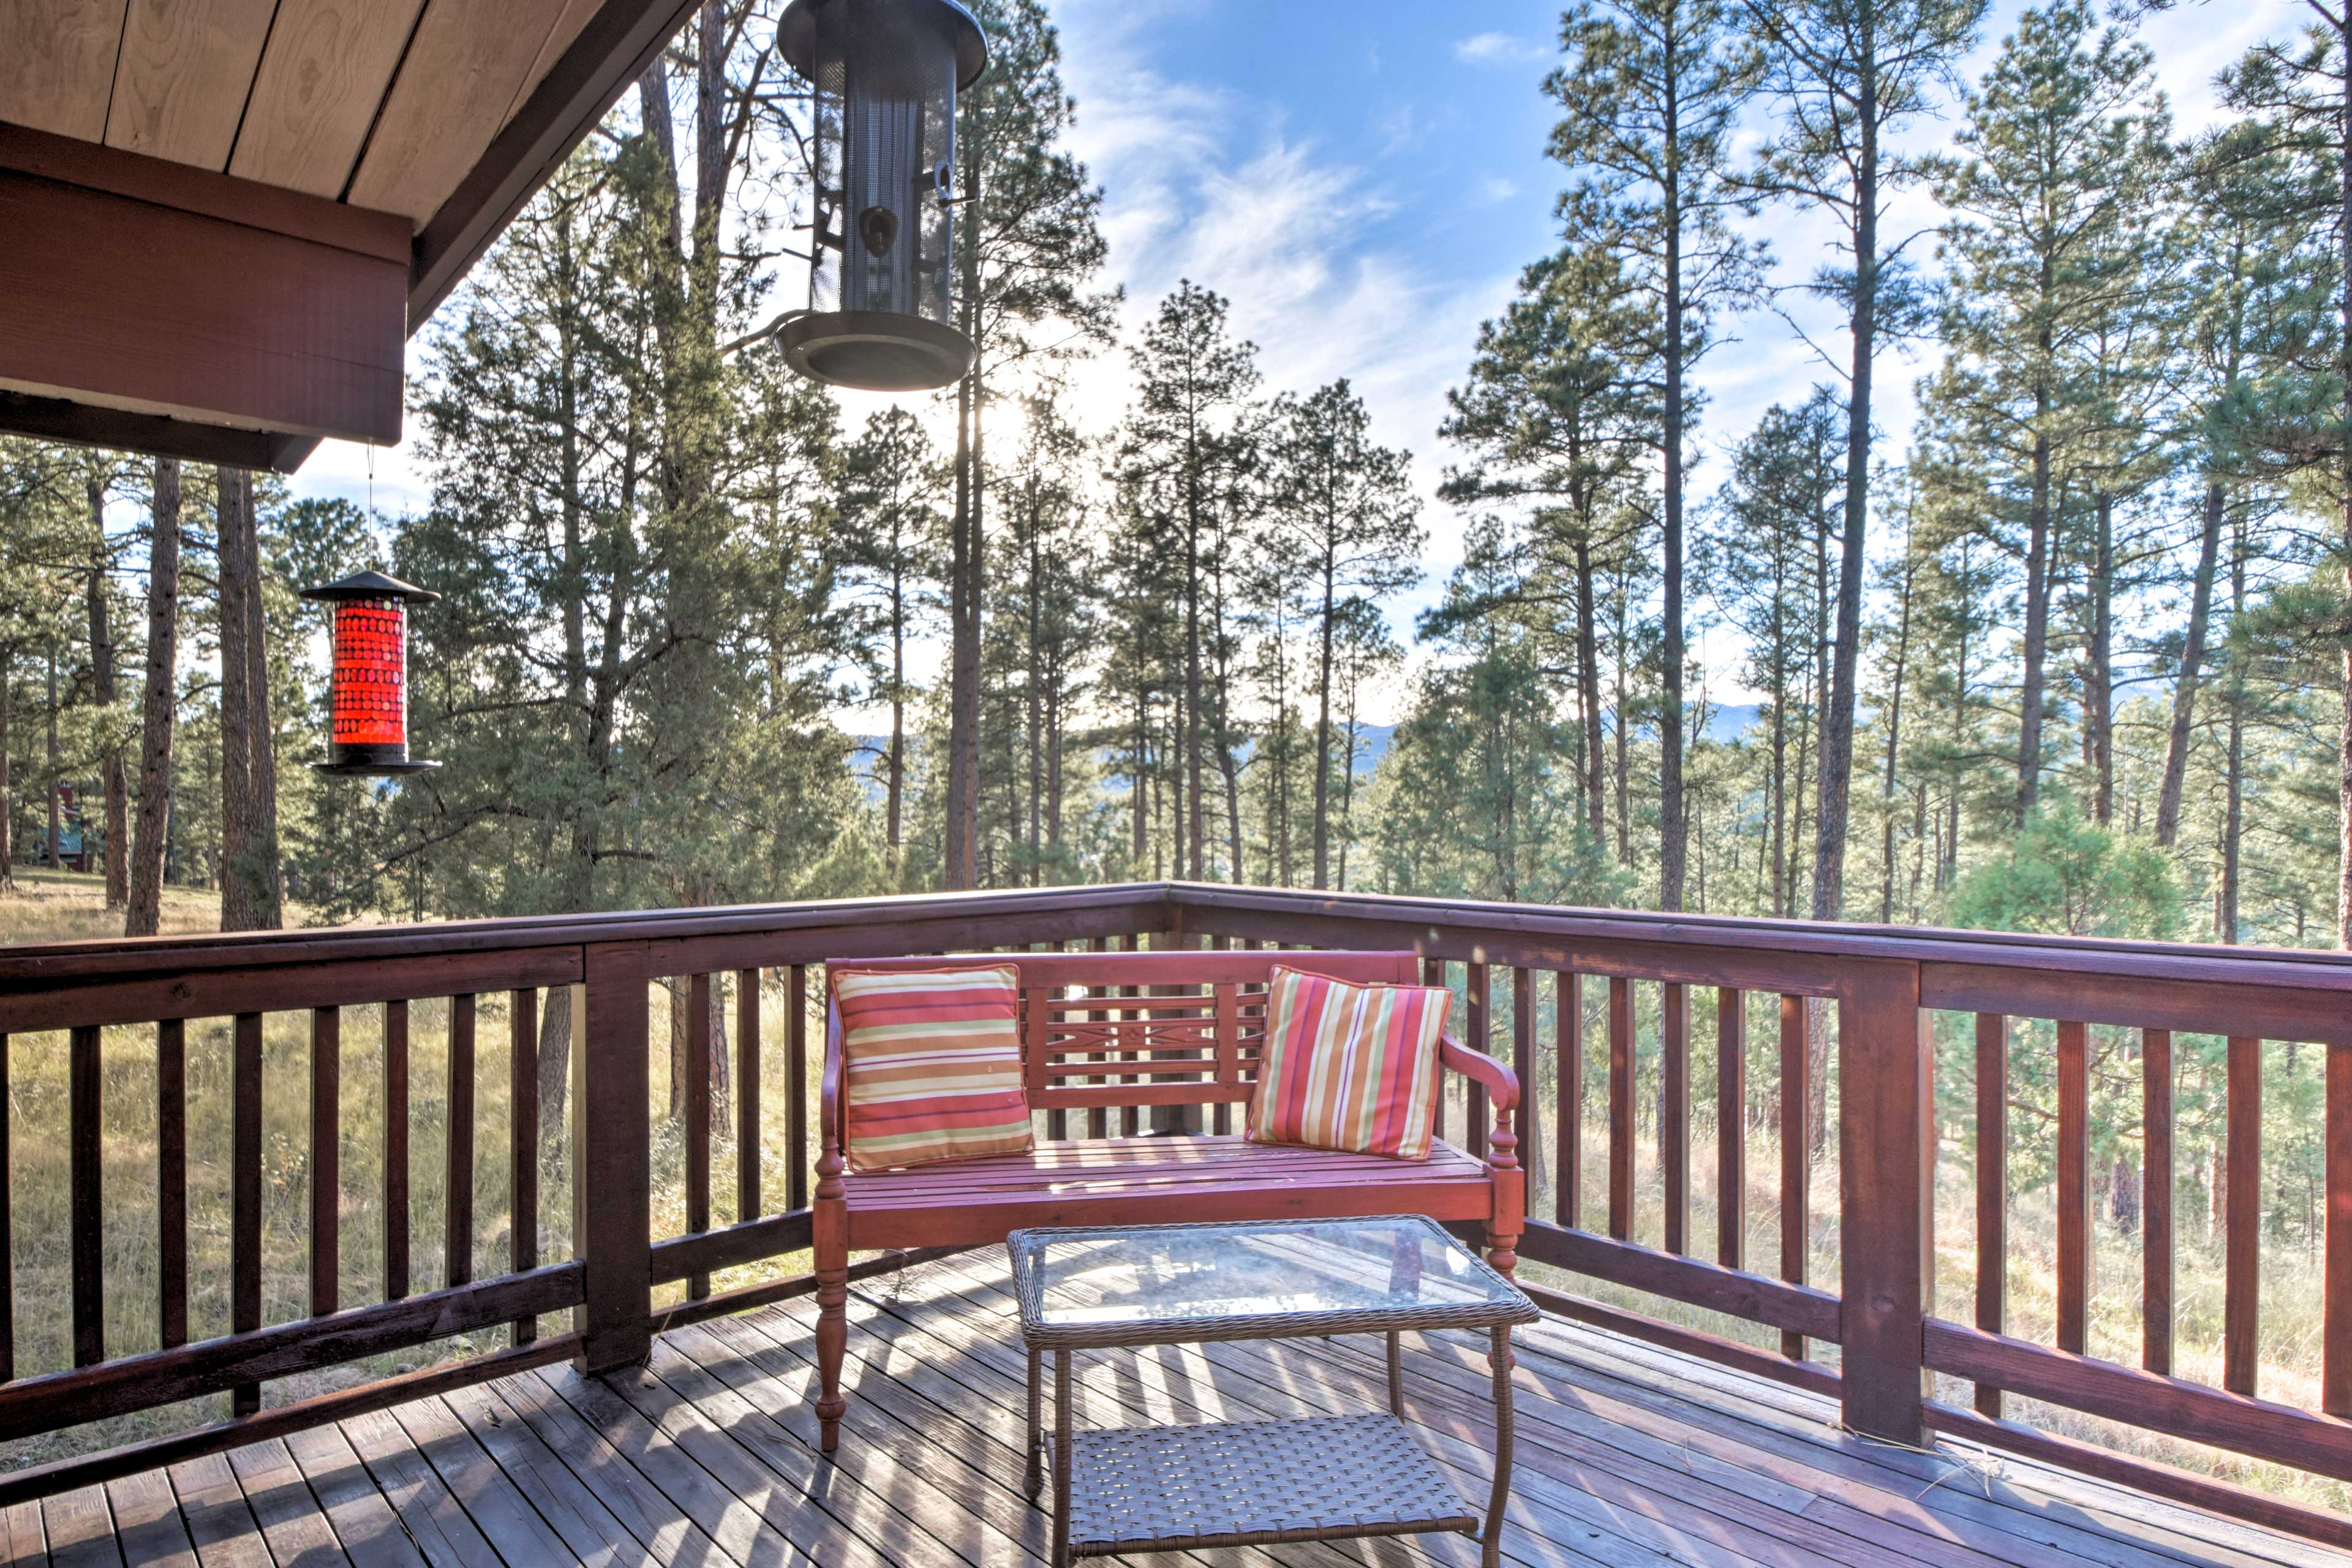 Step right out to the deck to sip your morning coffee in the fresh mountain air.